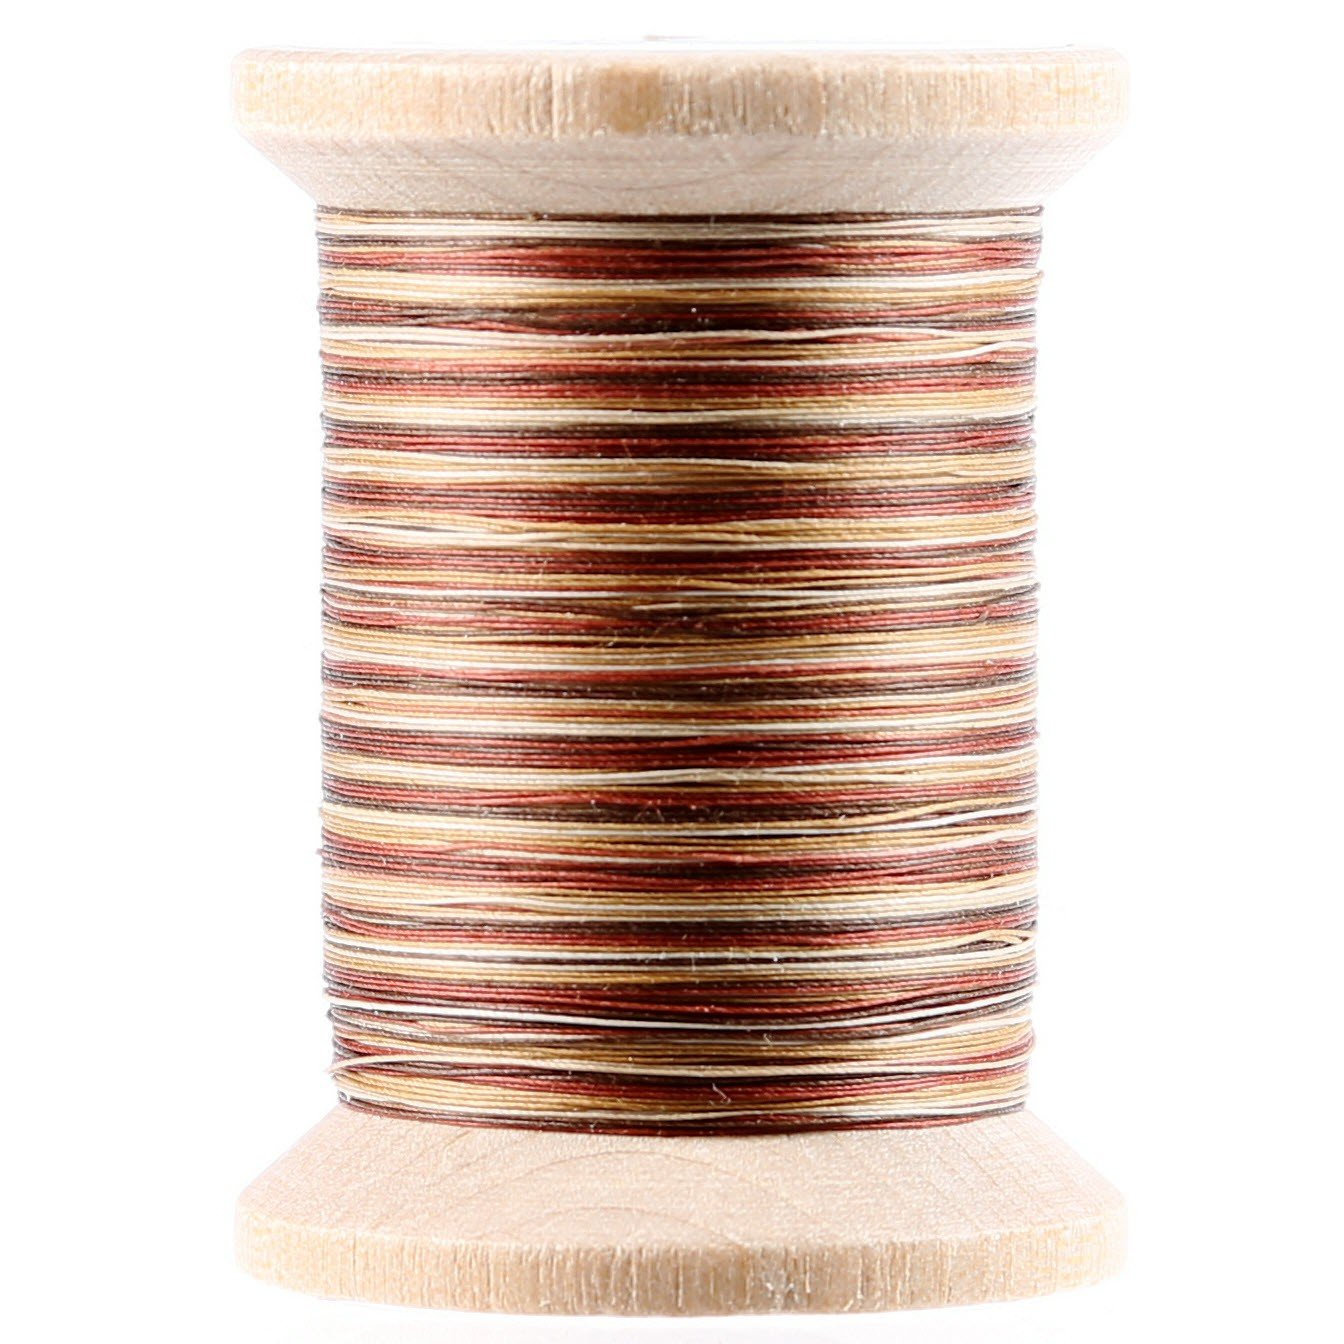 Variegated Cotton Hand Quilting Thread 400yds Cream and Brown